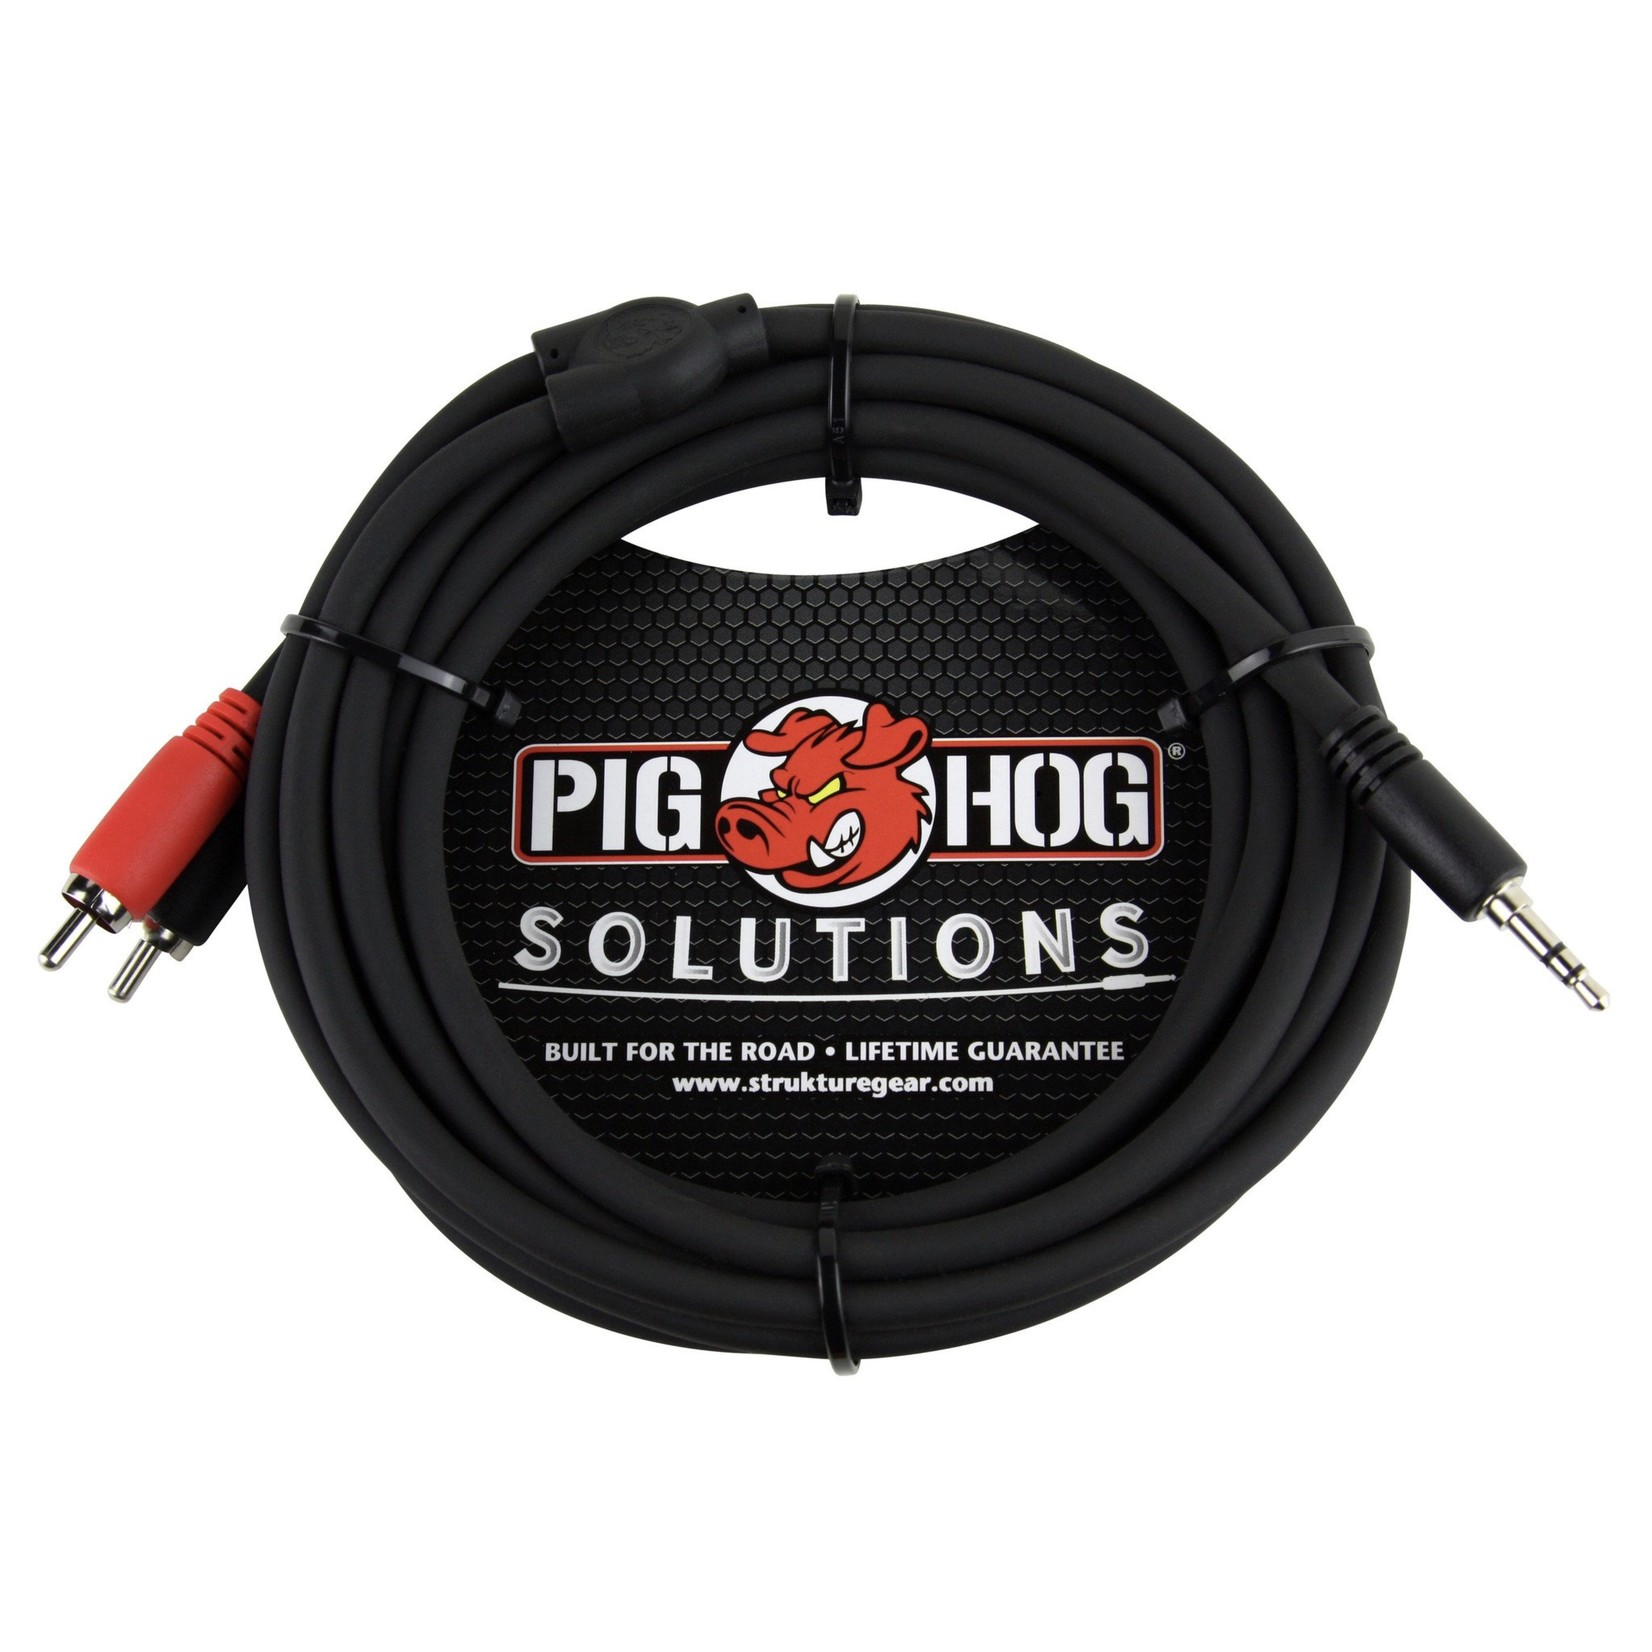 Pig Hog Pig Hog Solutions - 10-Foot Stereo Breakout Cable, 3.5mm mini plug to Dual RCA (PB-S3R10)